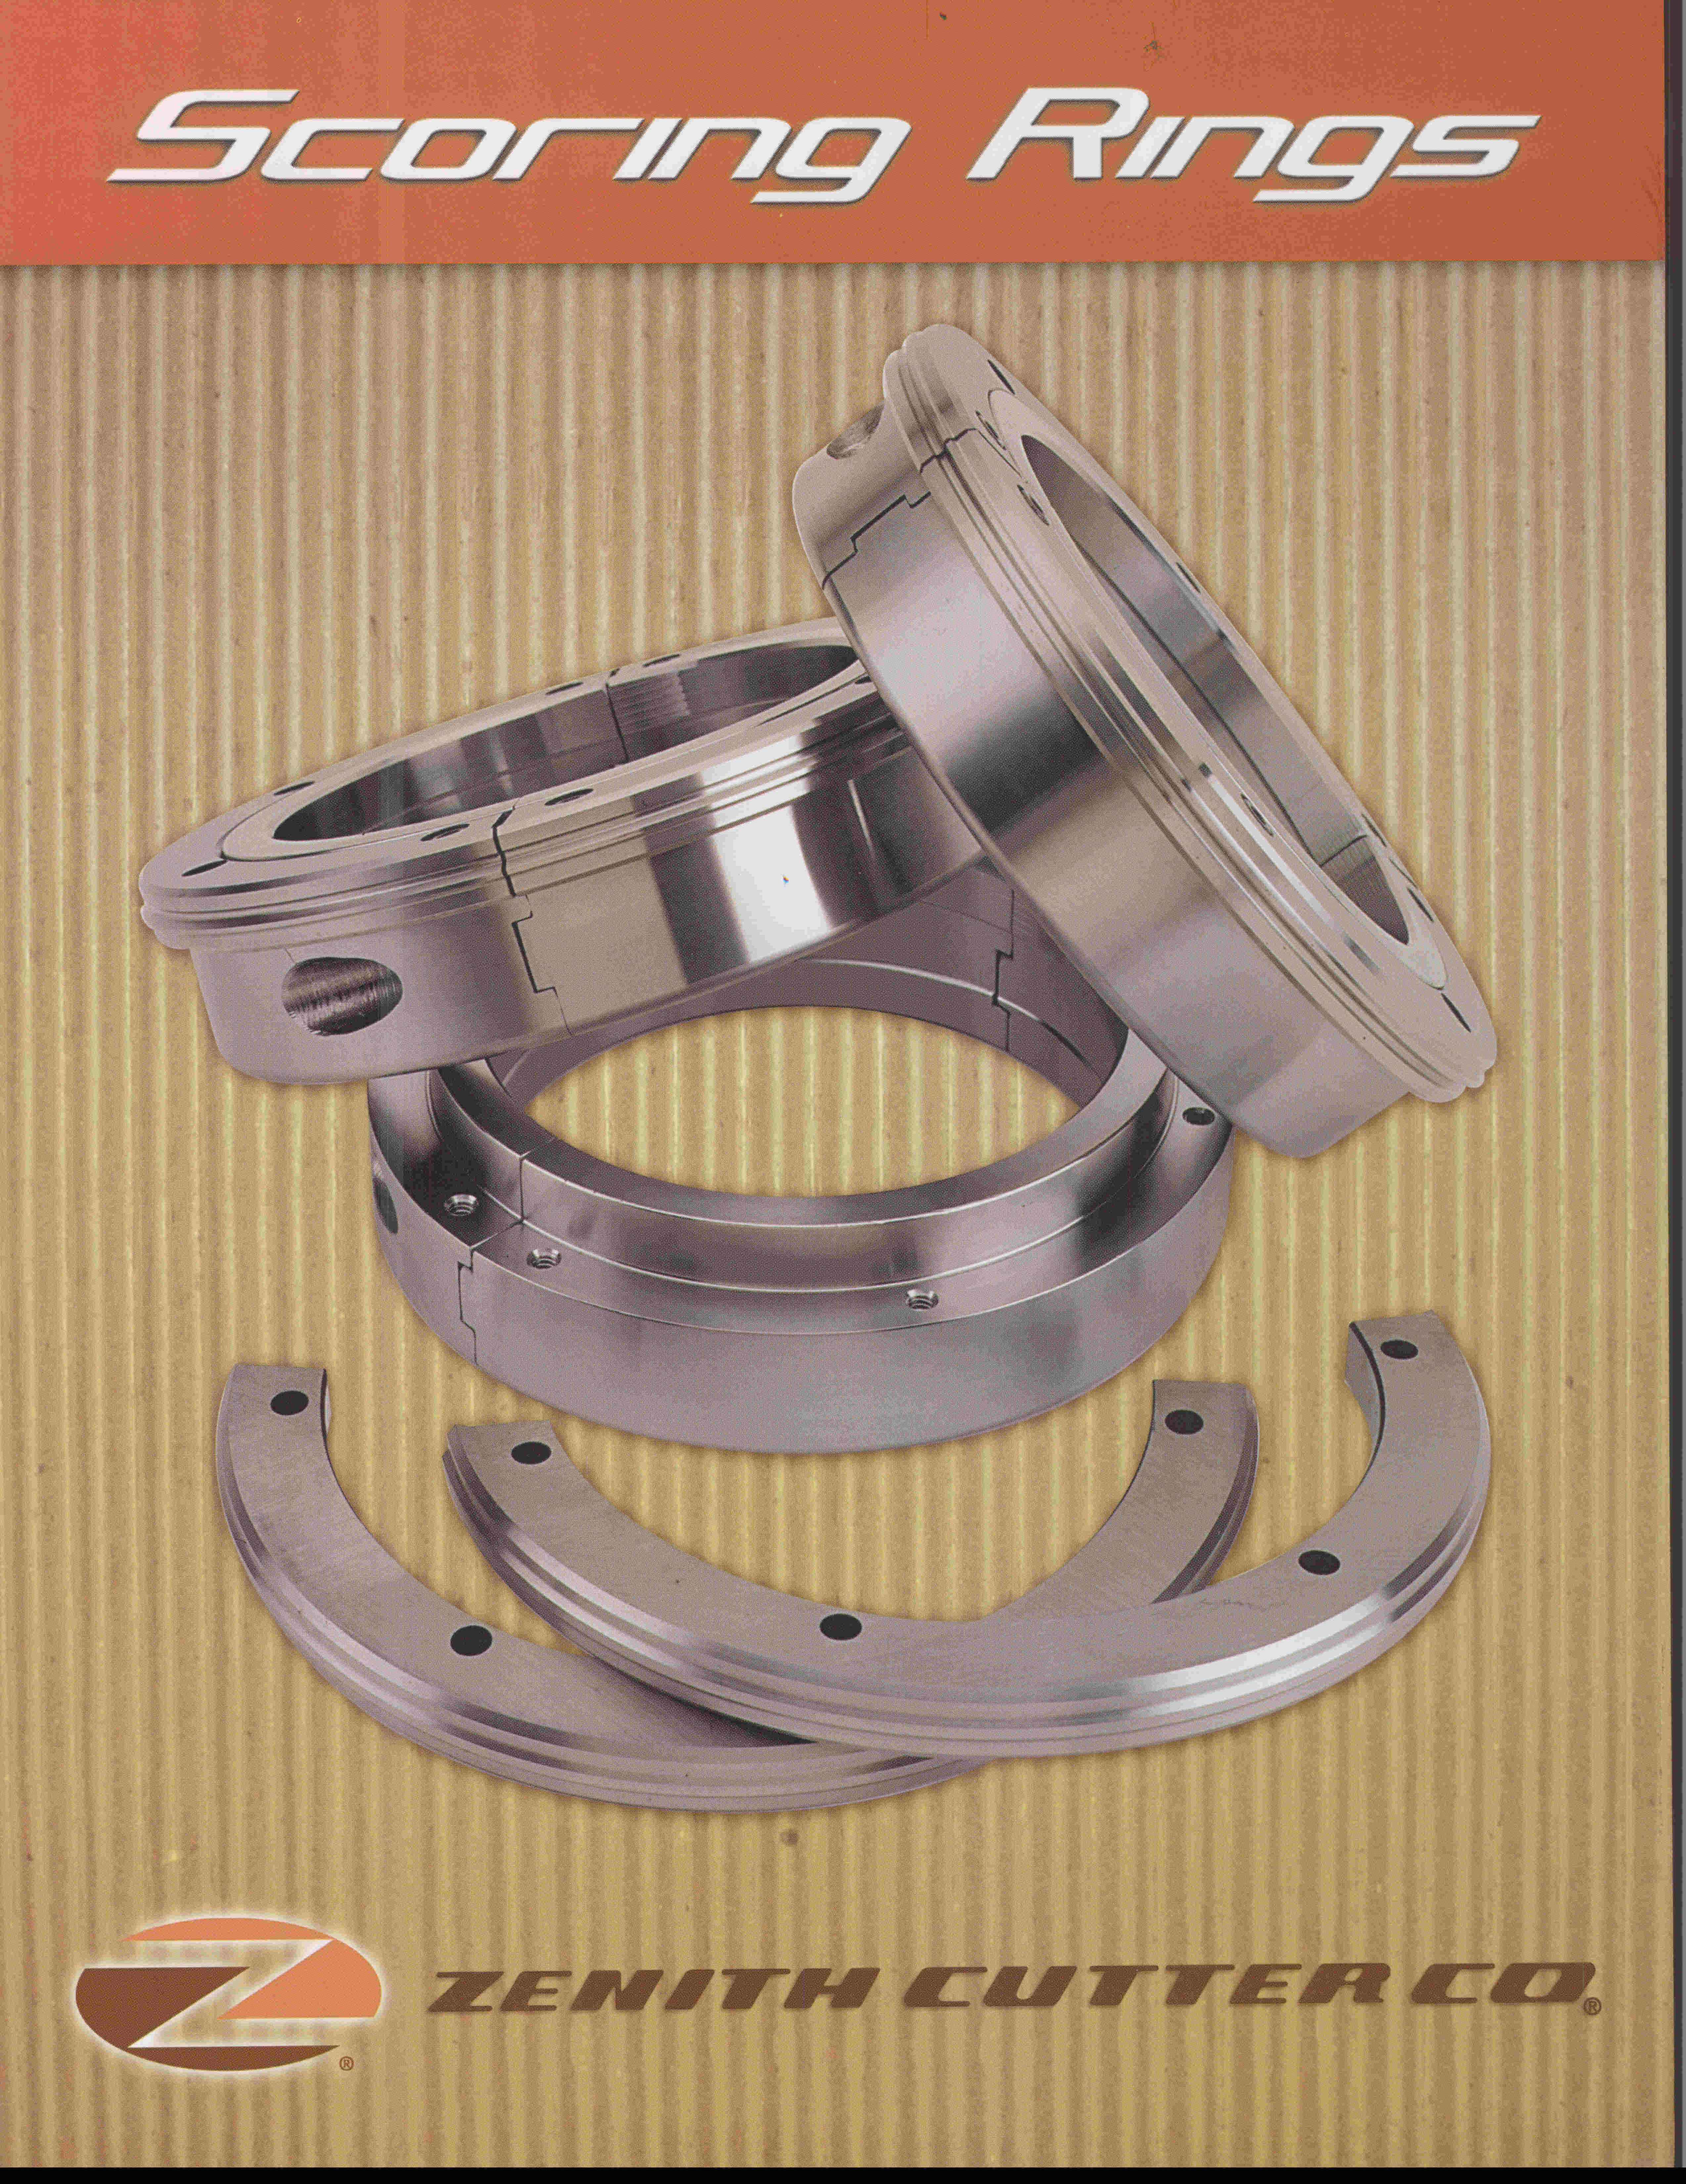 Read more in the Zenith Cutter Scoring Rings brochure